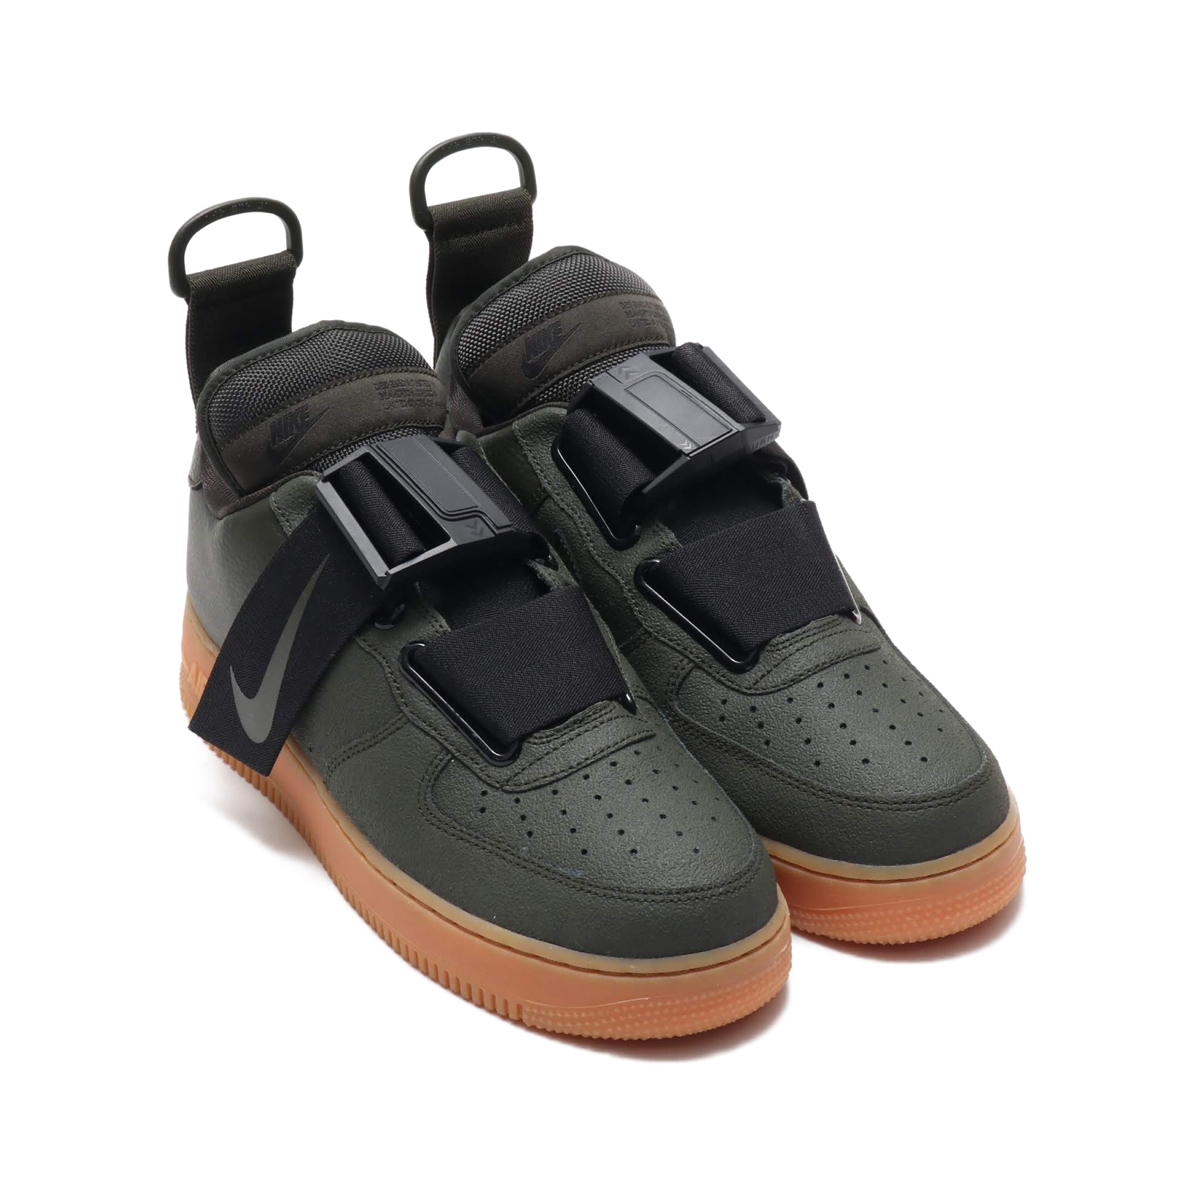 0970a38ff9ddae NIKE AIR FORCE 1 UTILITY (Nike air force 1 utility) SEQUOIA BLACK-GUM MED  BROWN 18HO-S